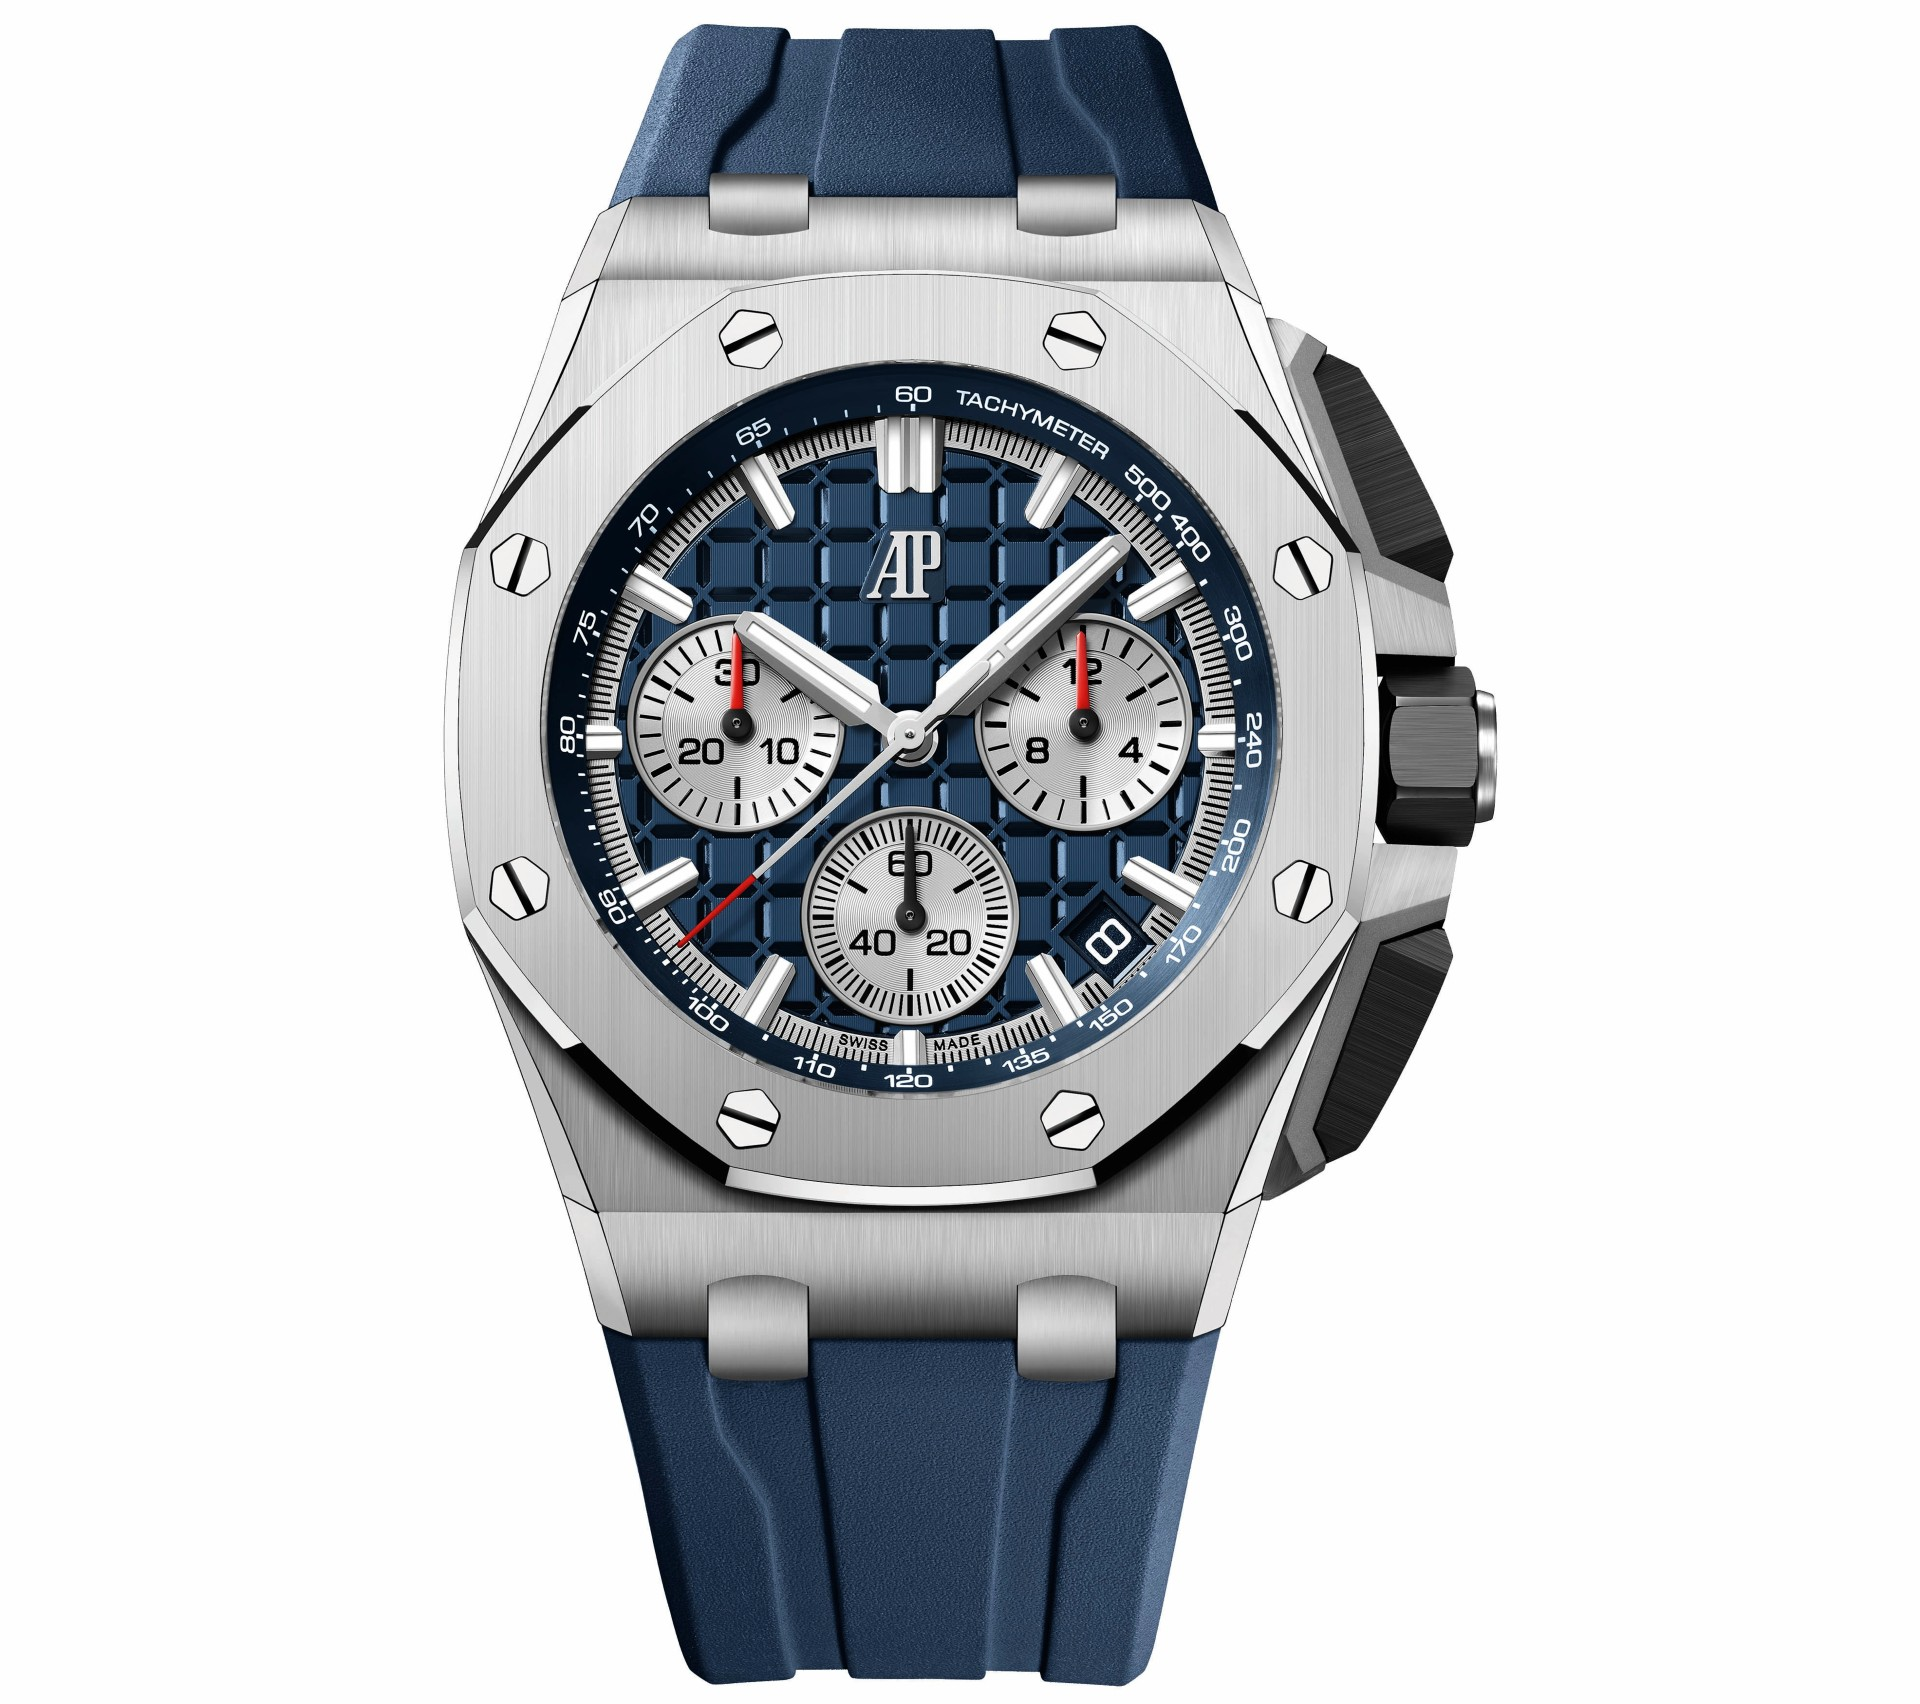 43mm Royal Oak Offshore in stainless steel with blue dial 1